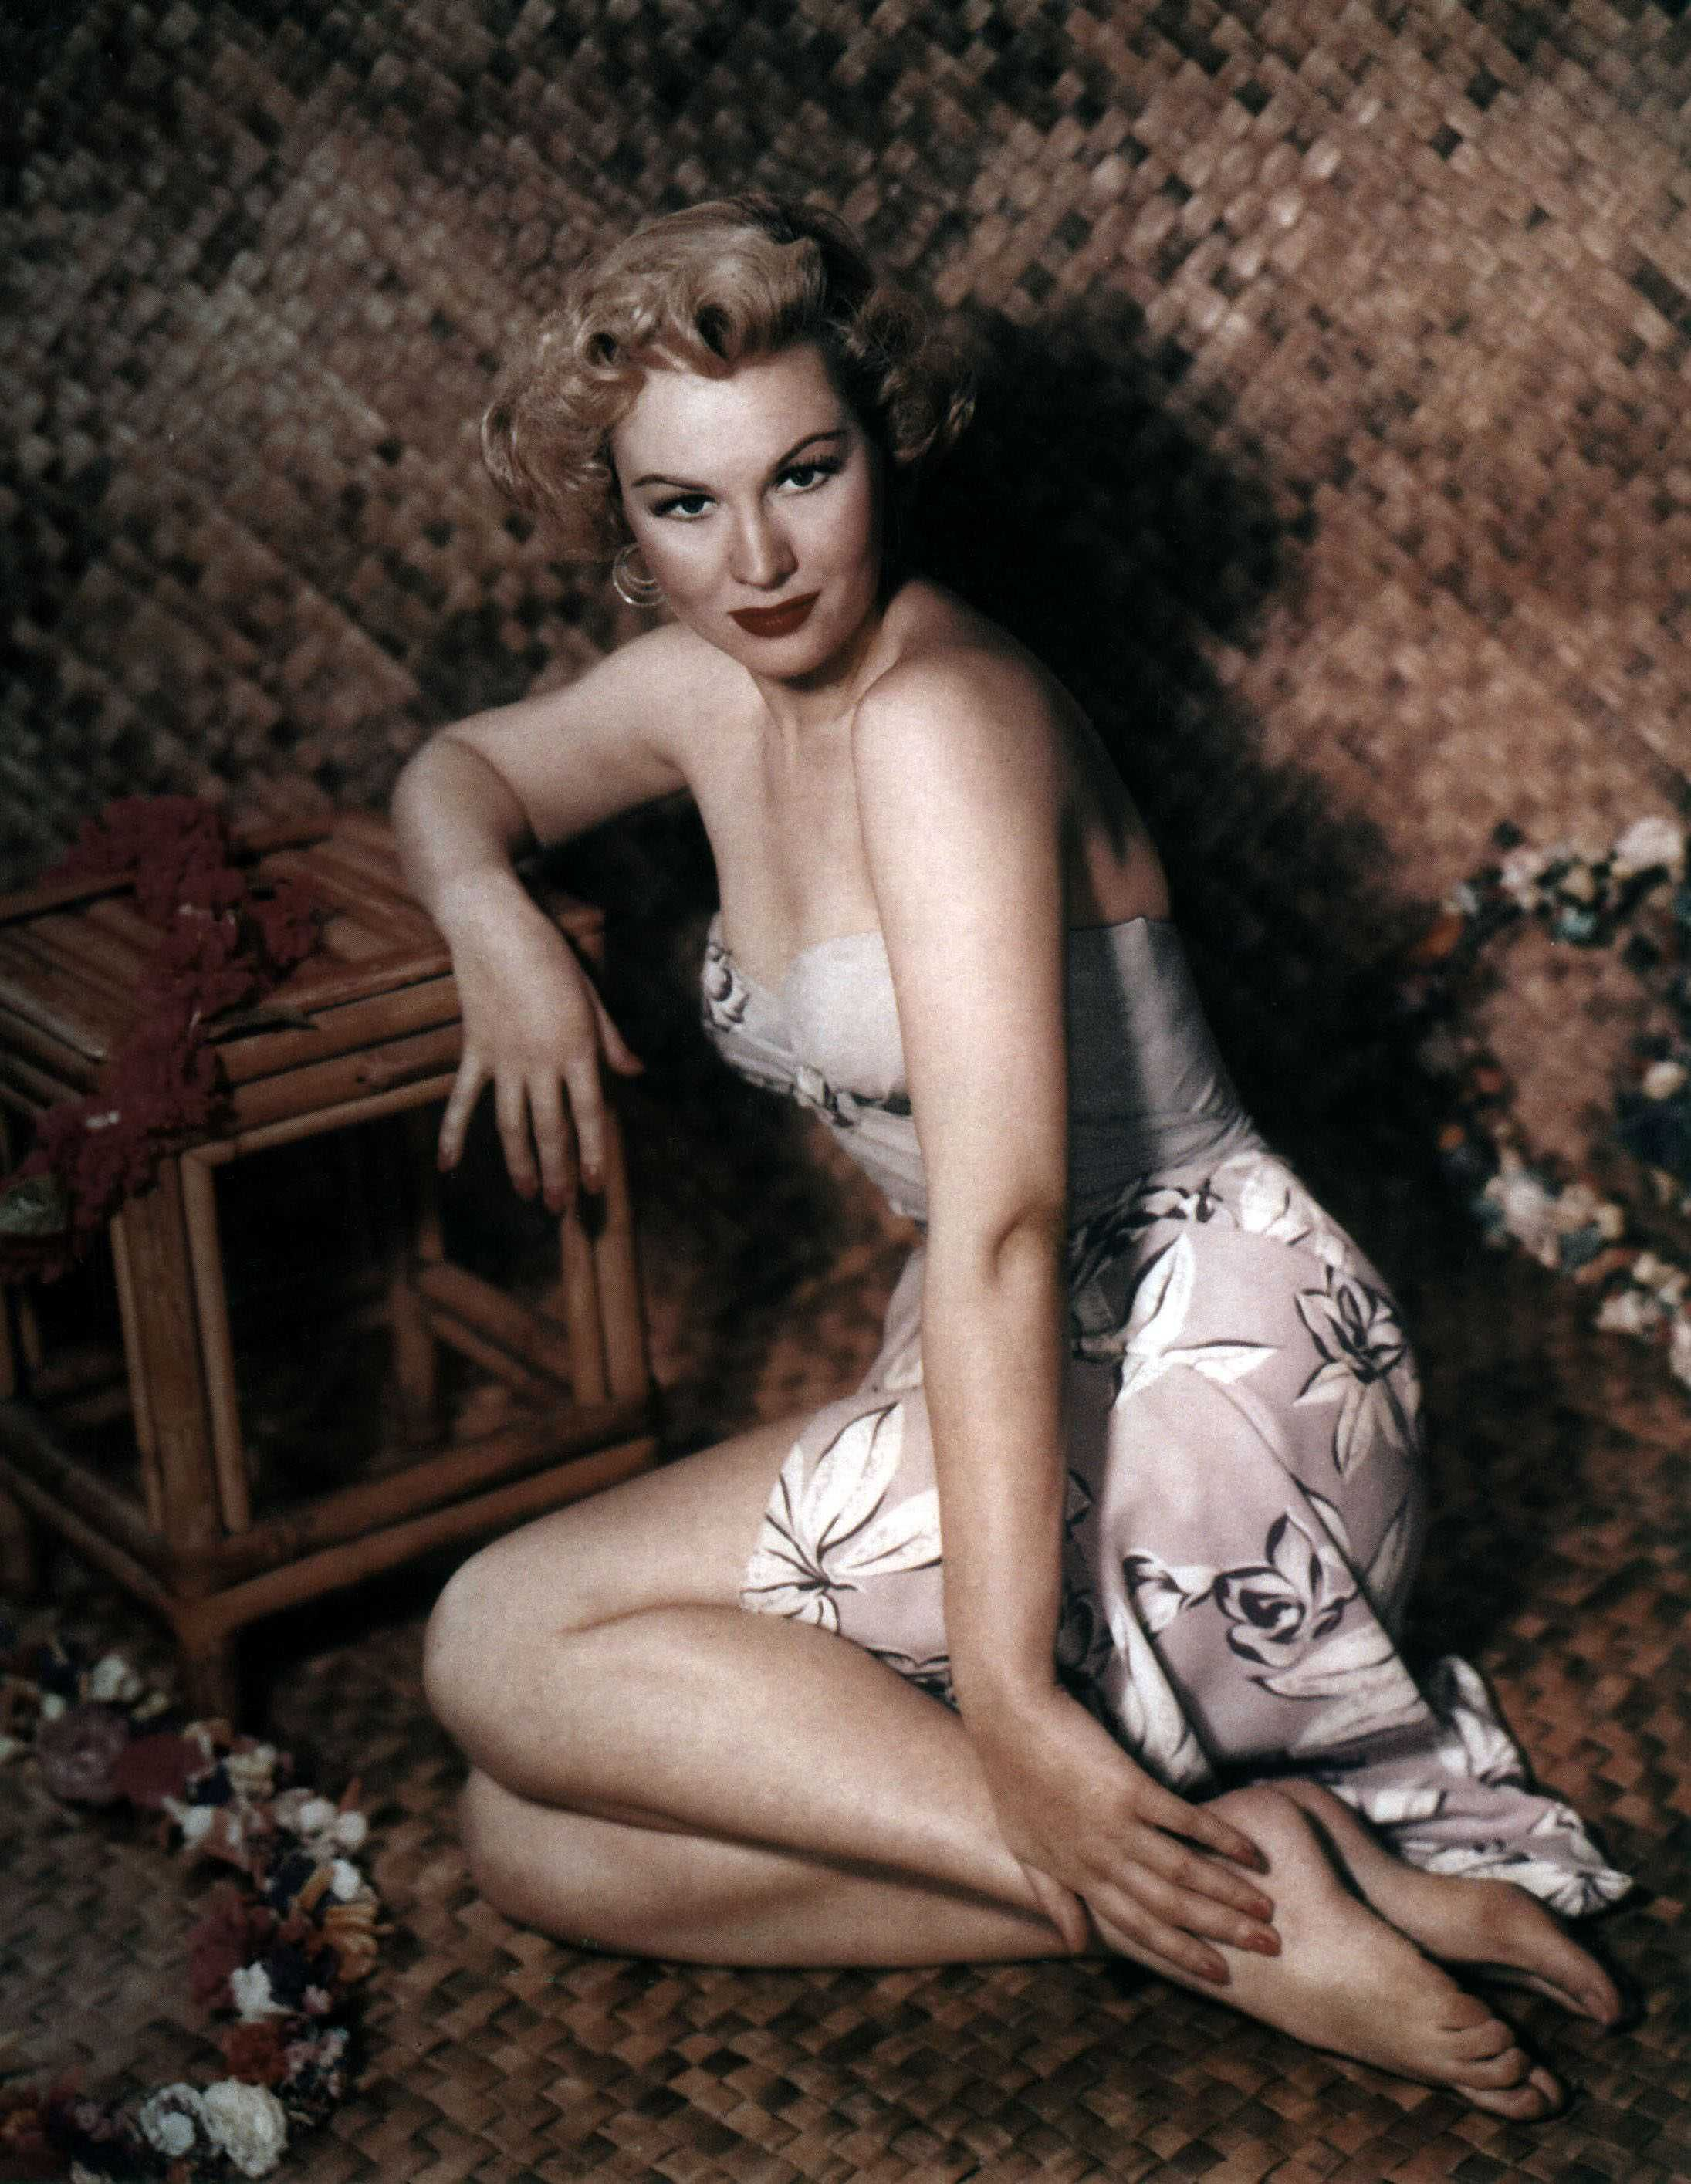 virginia mayo youtube